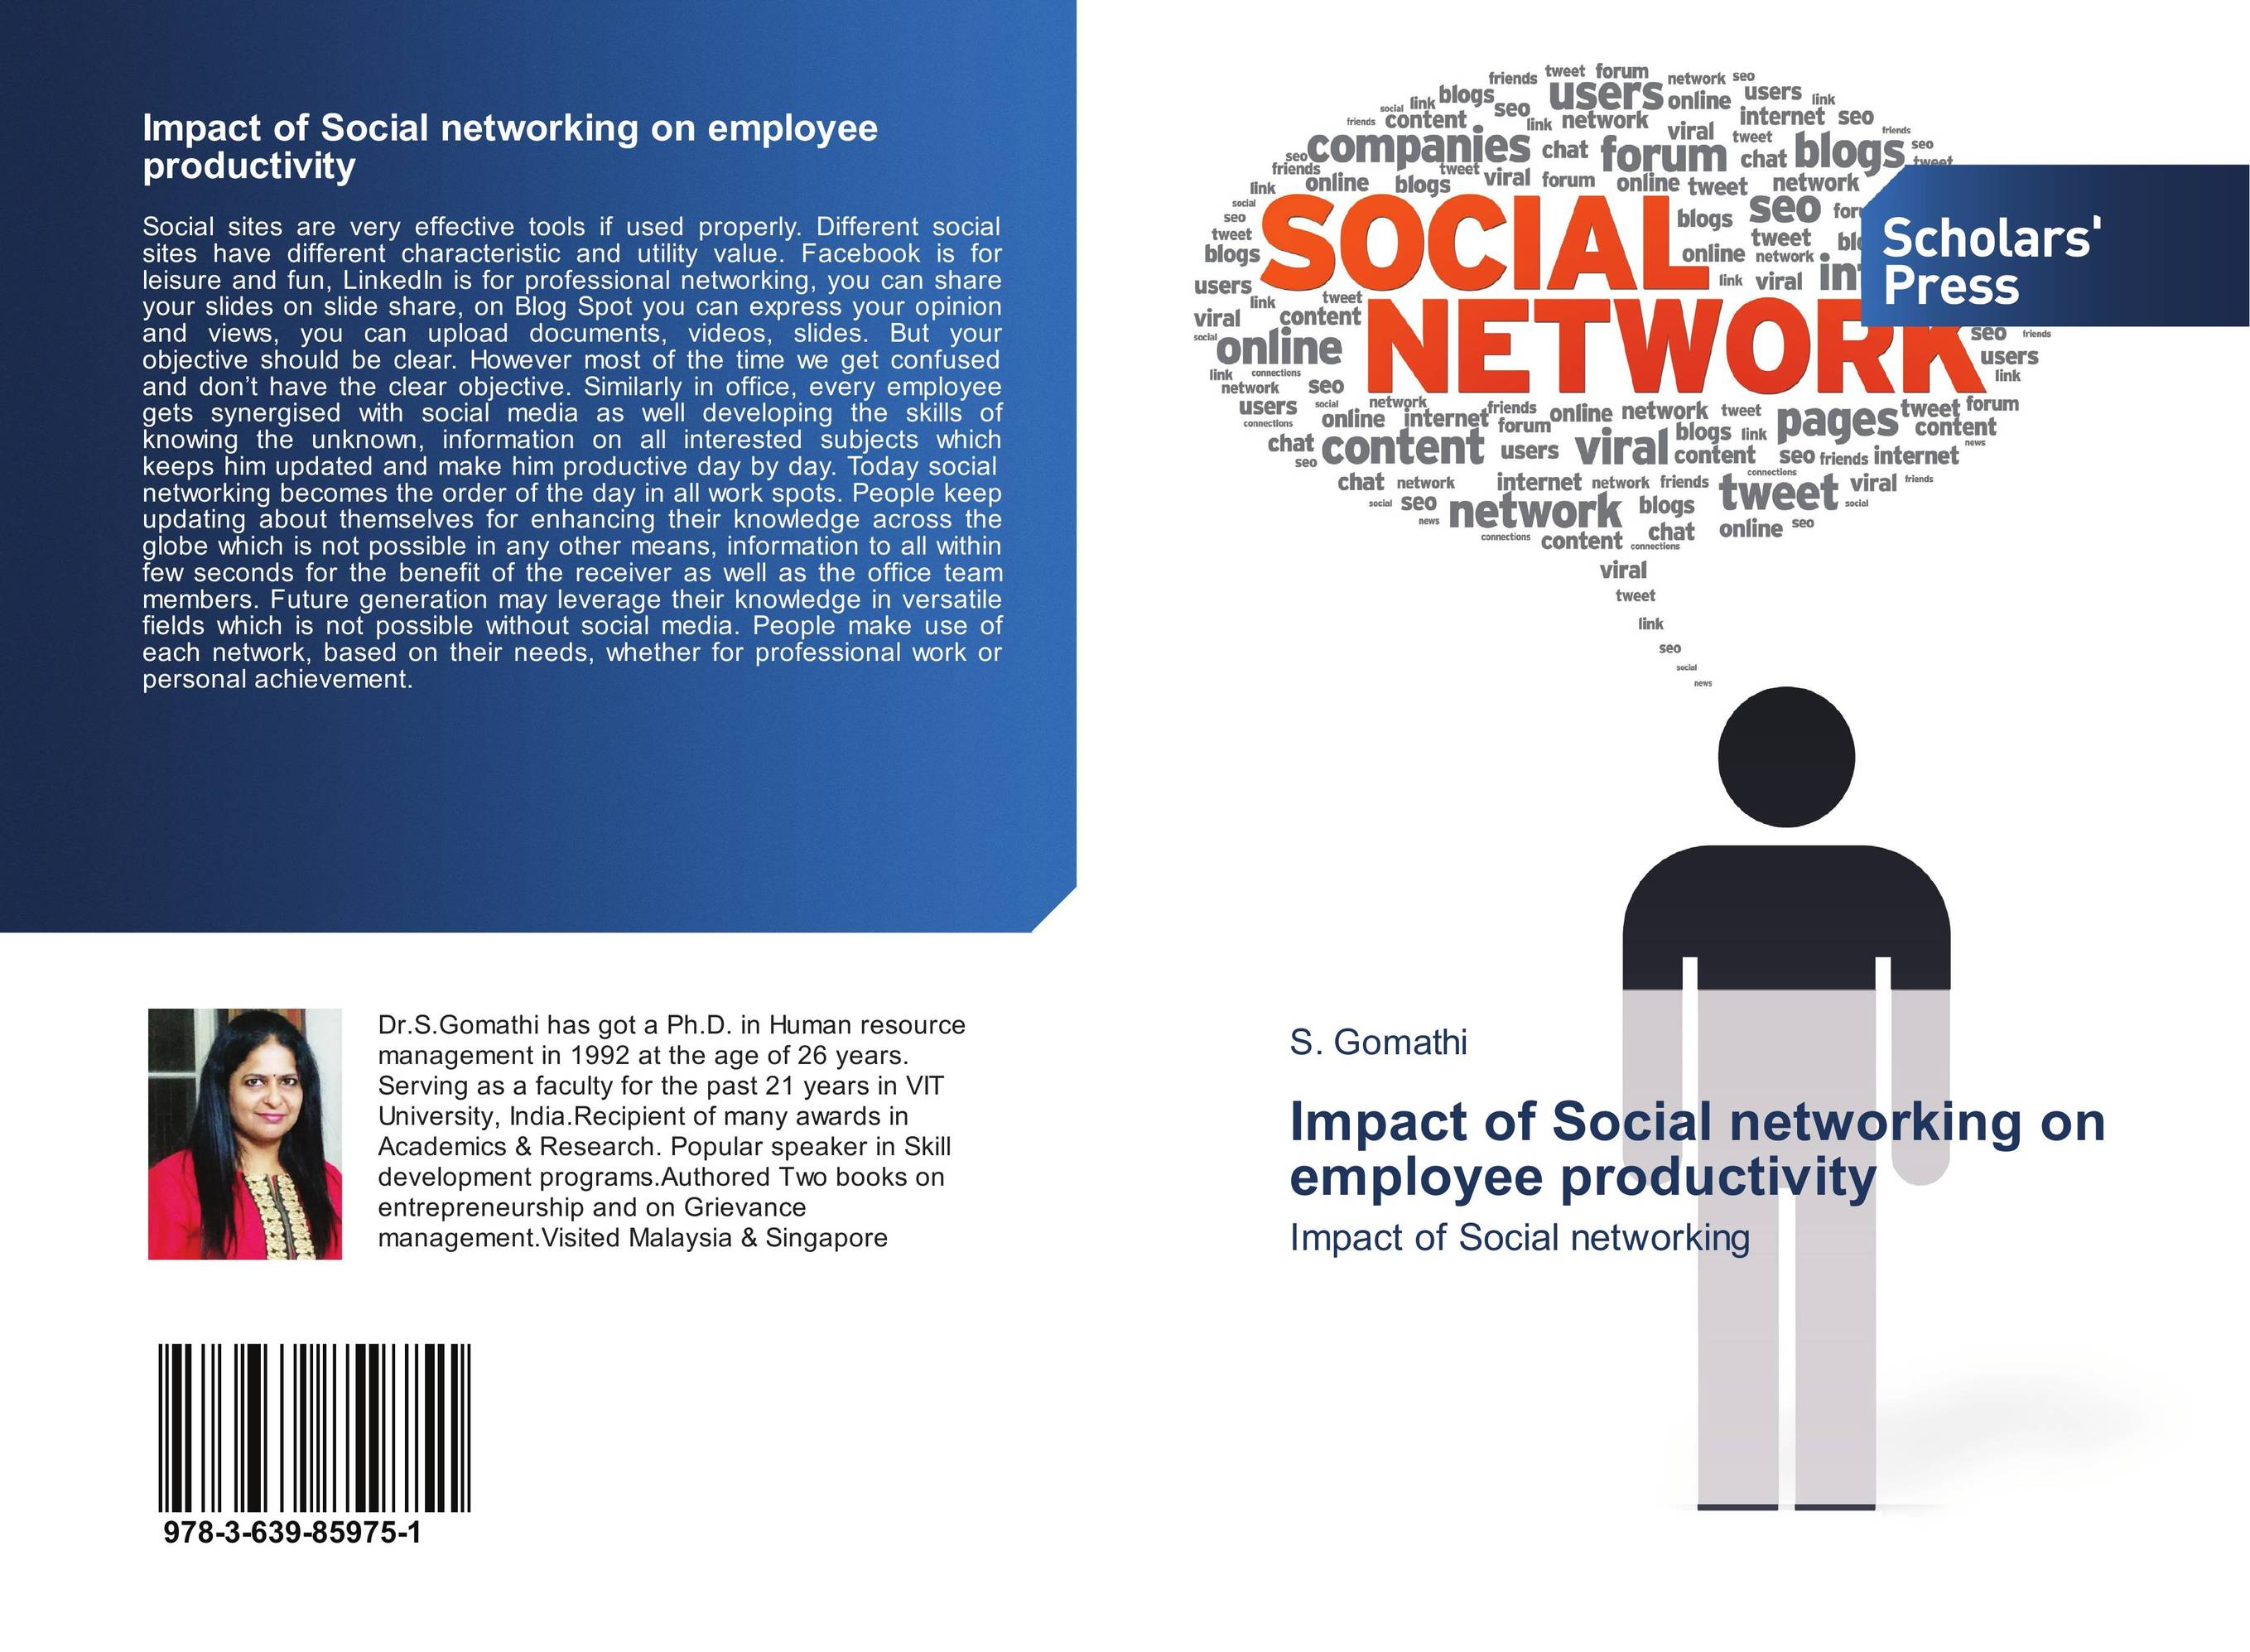 the impact of social networking on Further more bbc news reports that social networking sites create social isolation in to a certain extend over the internet moreover there are some other aspects which can be considered as negative impacts of social networking on the society.